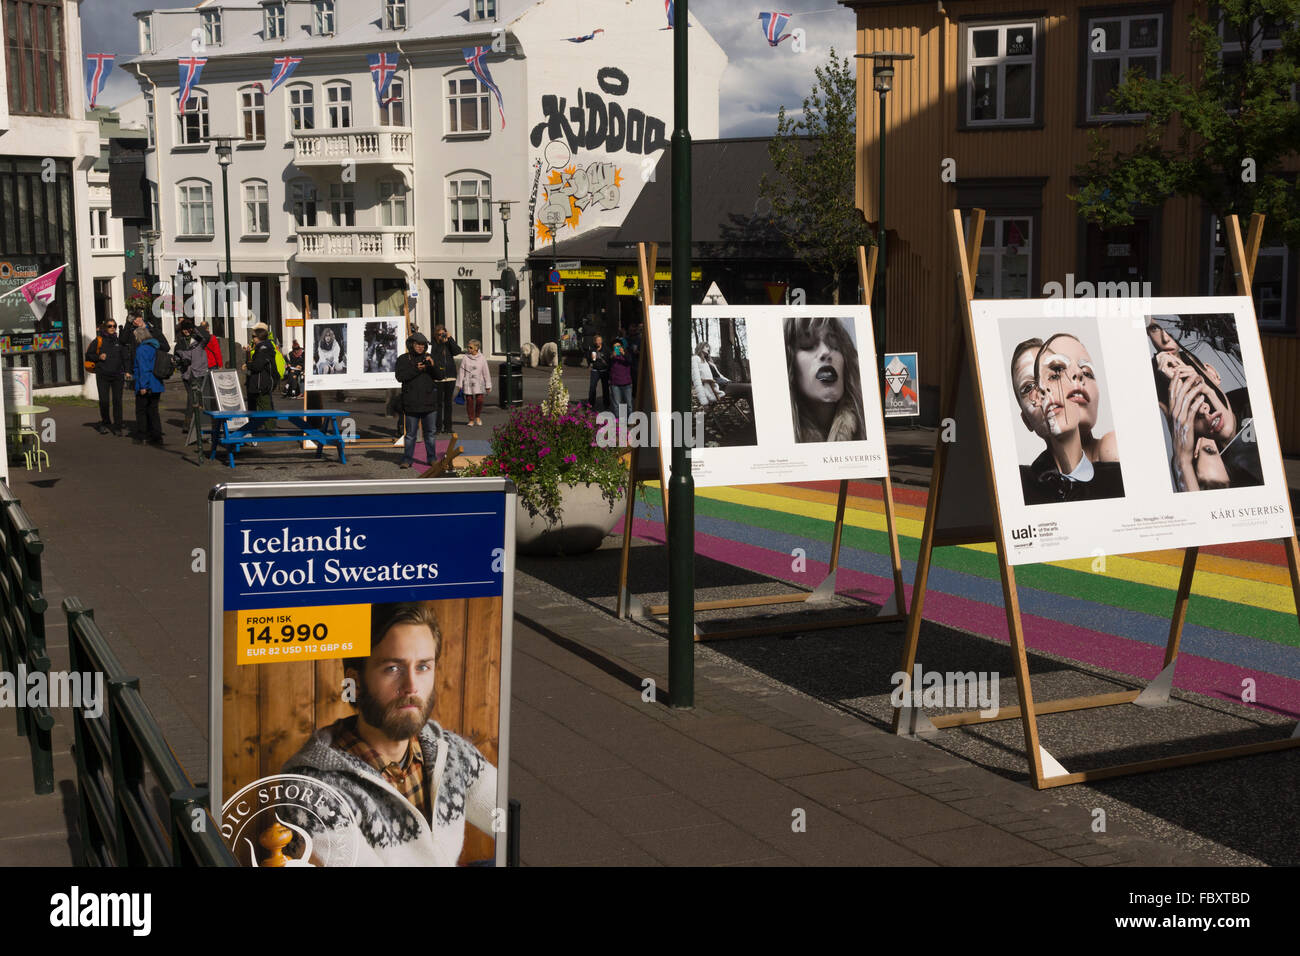 Boards in Reykjavik showing photography of models from the University of the Arts London - Stock Image